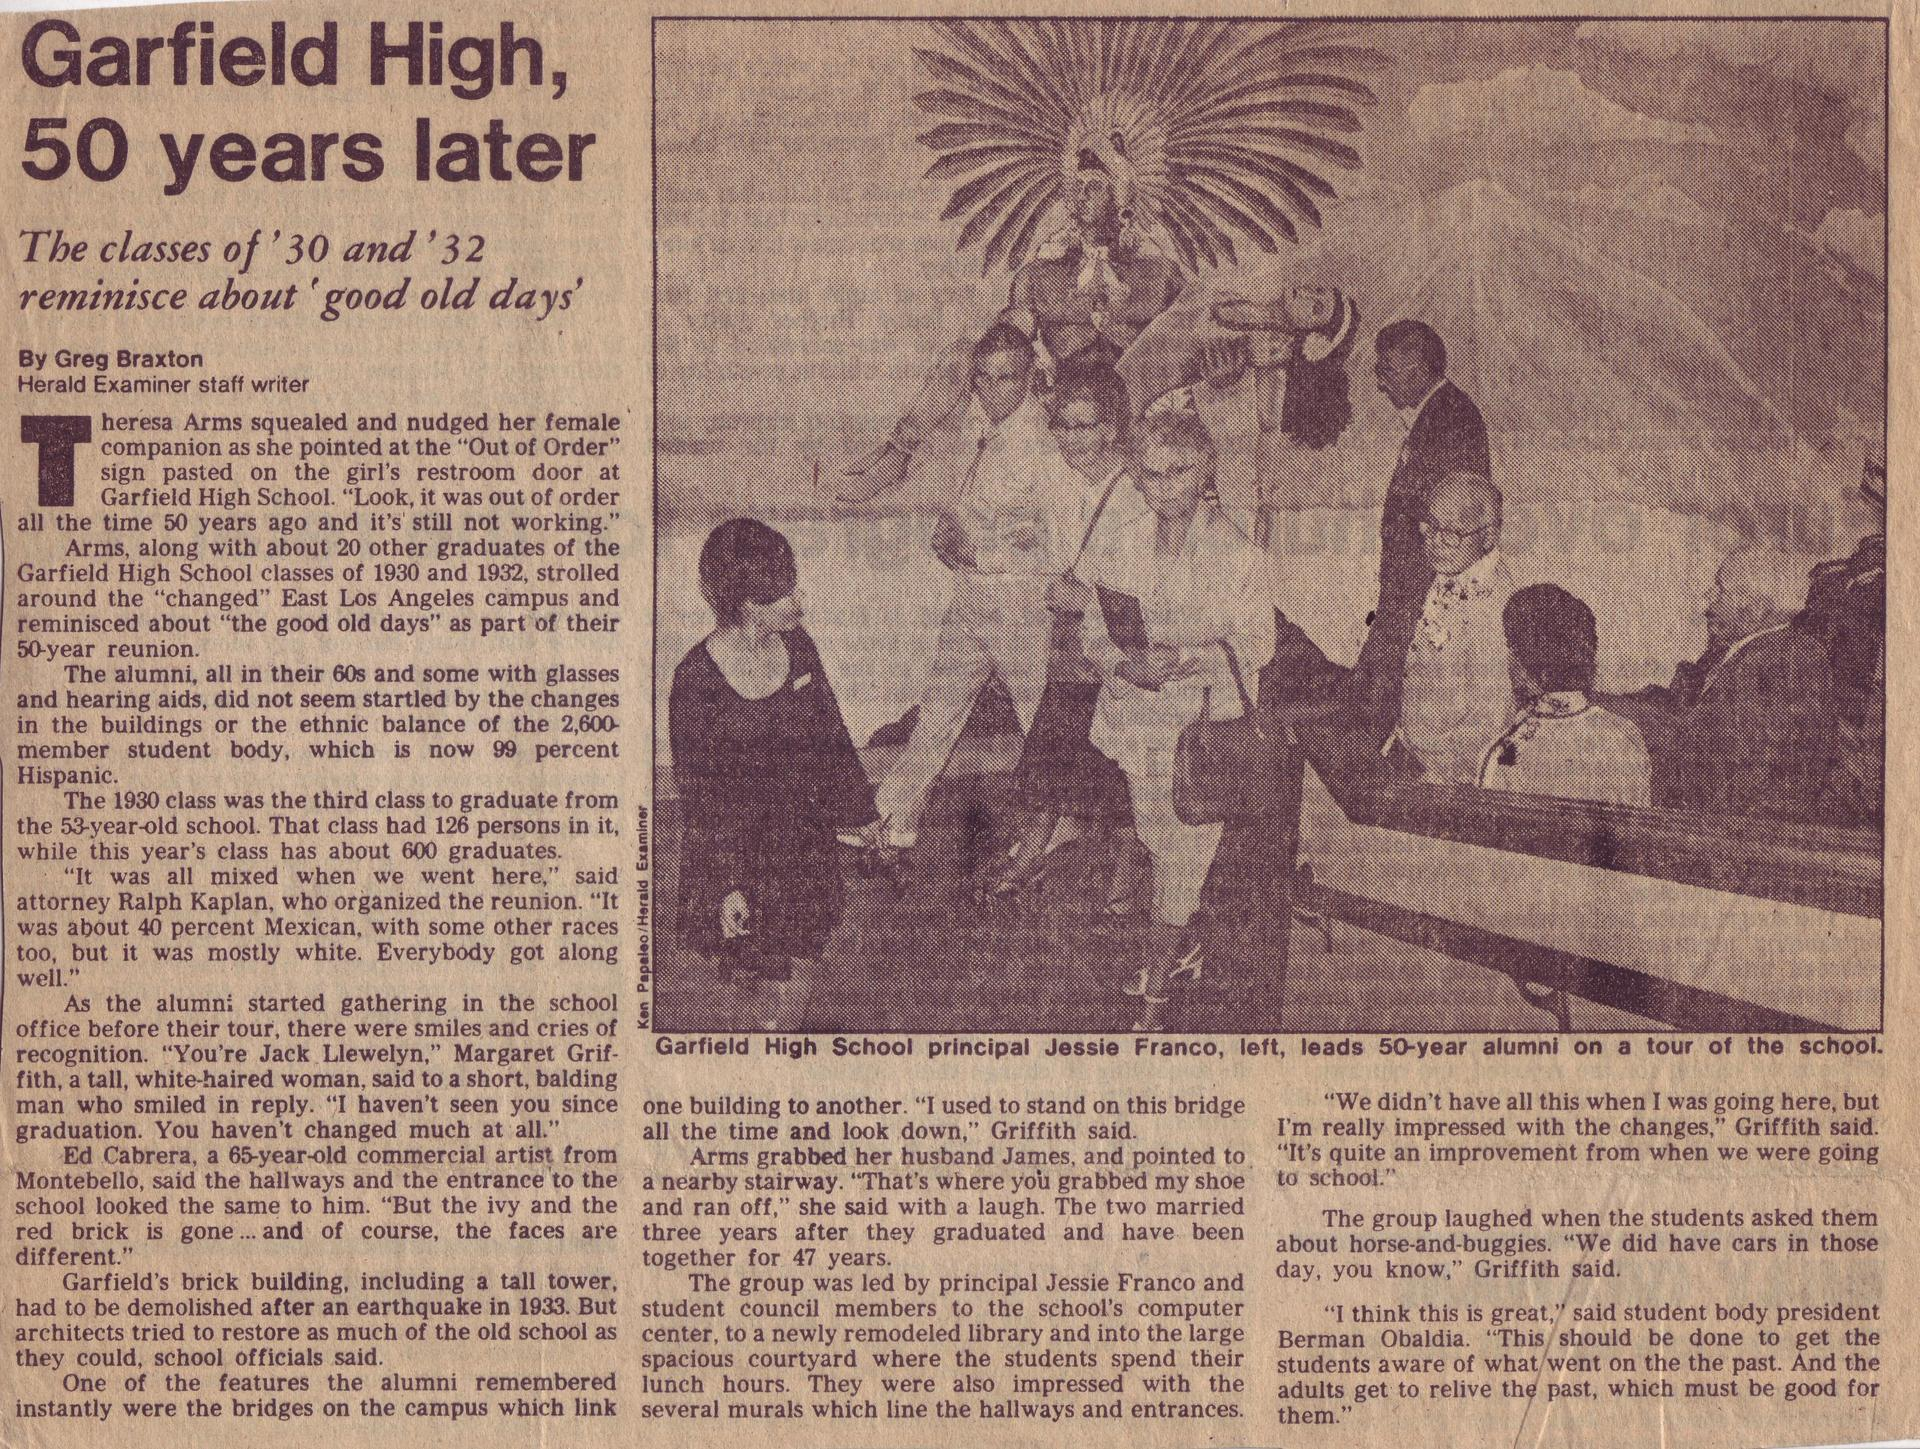 The class of 1930 visits Garfield class of 1980